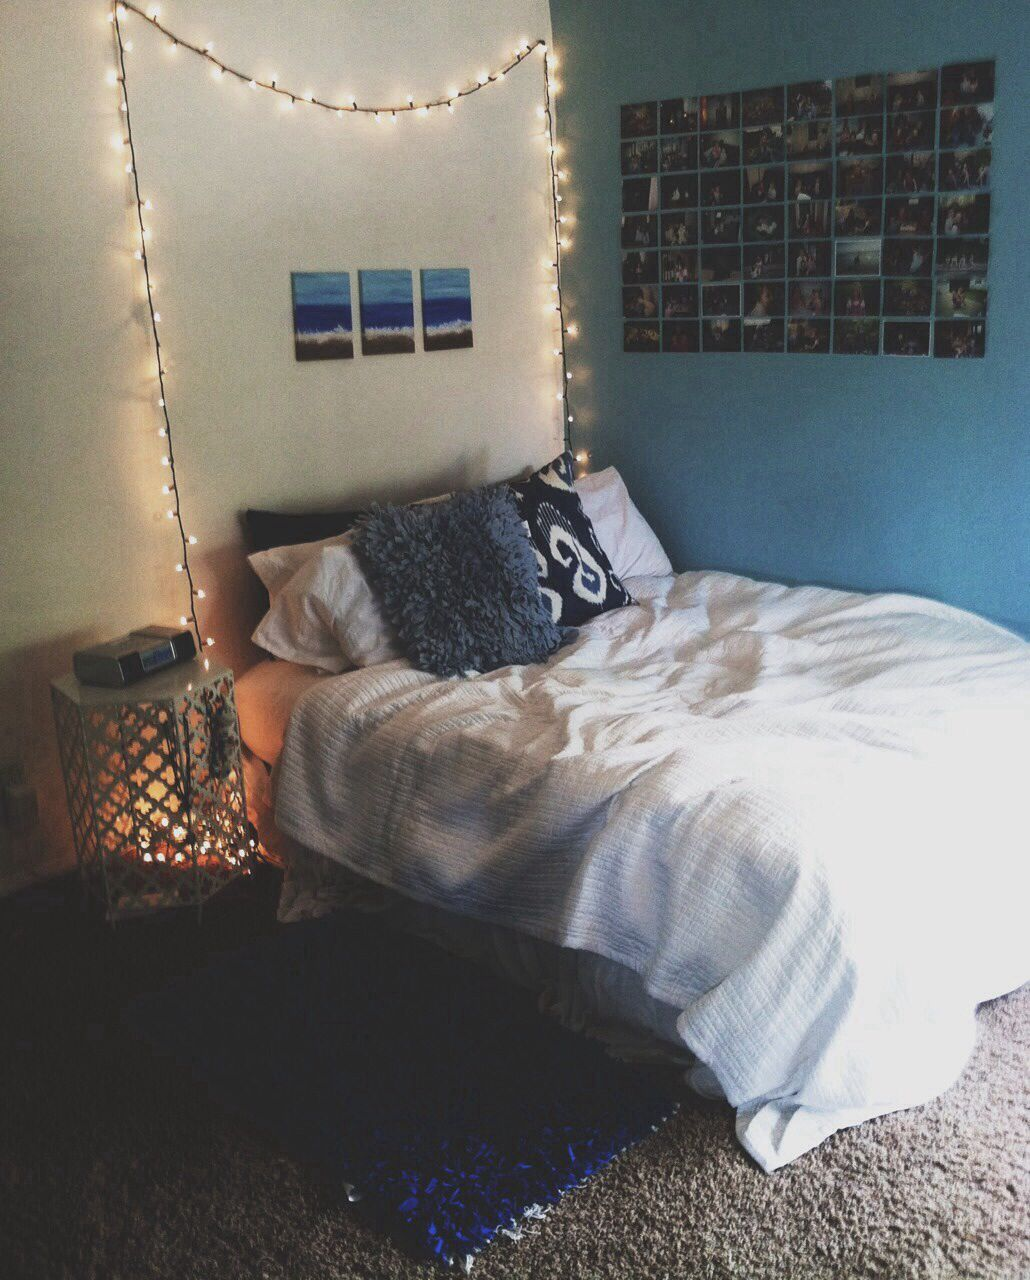 6e20fa bedroom tumblr ideas - The Little Split Picture Above The Bed Is A Cute Idea Ties In The Contrasting